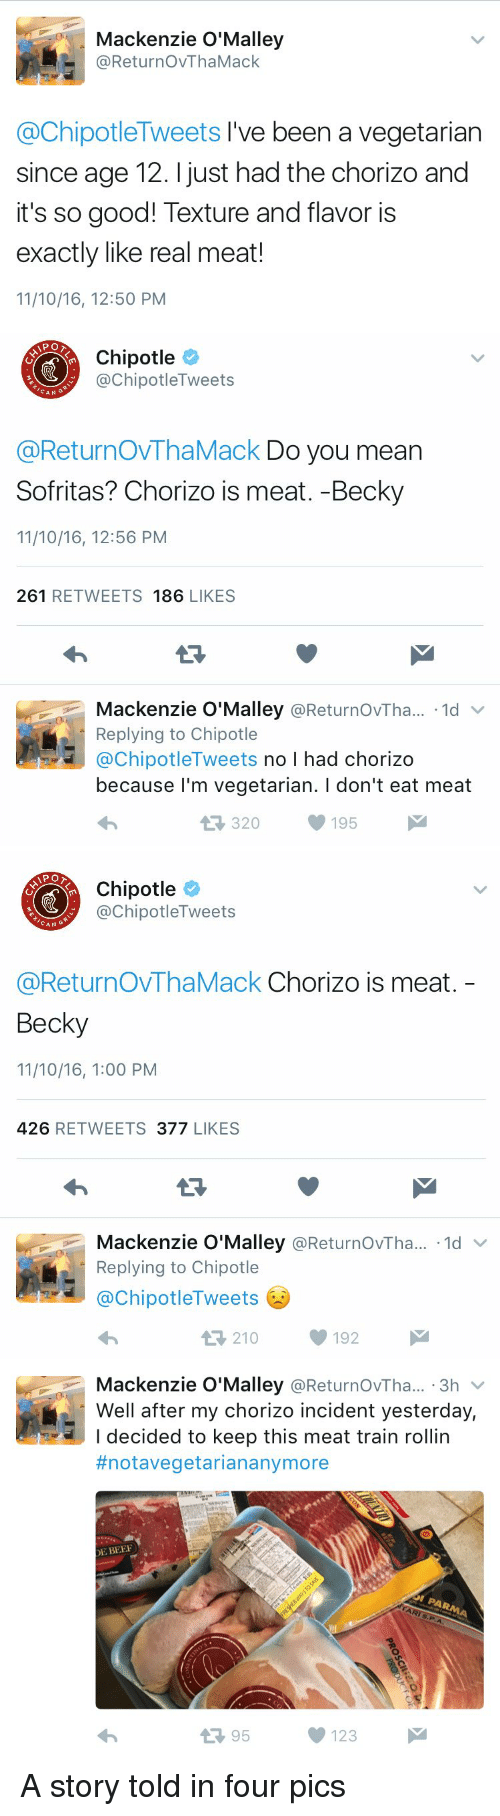 Beef, Beef, and Chipotle: Mackenzie O'Malley  @ReturnovThaMack  @ChipotleTweets I've been a vegetarian  since age 12. just had the chorizo and  it's so good! Texture and flavor is  exactly like real meat!  11/10/16, 12:50 PM   Chipotle  @Chi Tweets  nipotle CAN  @ReturnovThaMack Do you mean  Sofritas? Chorizo is meat. -Becky  11/10/16, 12:56 PM  261  RETWEETS 186  LIKES  Mackenzie O'Malley  @ReturnovTha... 1d v  Replying to Chipotle  @ChipotleTweets no I had chorizo  because I'm vegetarian. l don't eat meat  320 195  M   Chipotle  @ChipotleTweets  CAN  G  @ReturnovThaMack Chorizo is meat  Becky  11/10/16, 1:00 PM  426  RETWEETS  377  LIKES  Mackenzie O'Malley  @ReturnovTha... 1d  v  Replying to Chipotle  @ChipotleTweets  210 192   Mackenzie O'Malley  @ReturnovTha... 3h  v  Well after my chorizo incident yesterday,  I decided to keep this meat train rollin  #notavegetarian anymore  DE BEEF  t 95  123 A story told in four pics